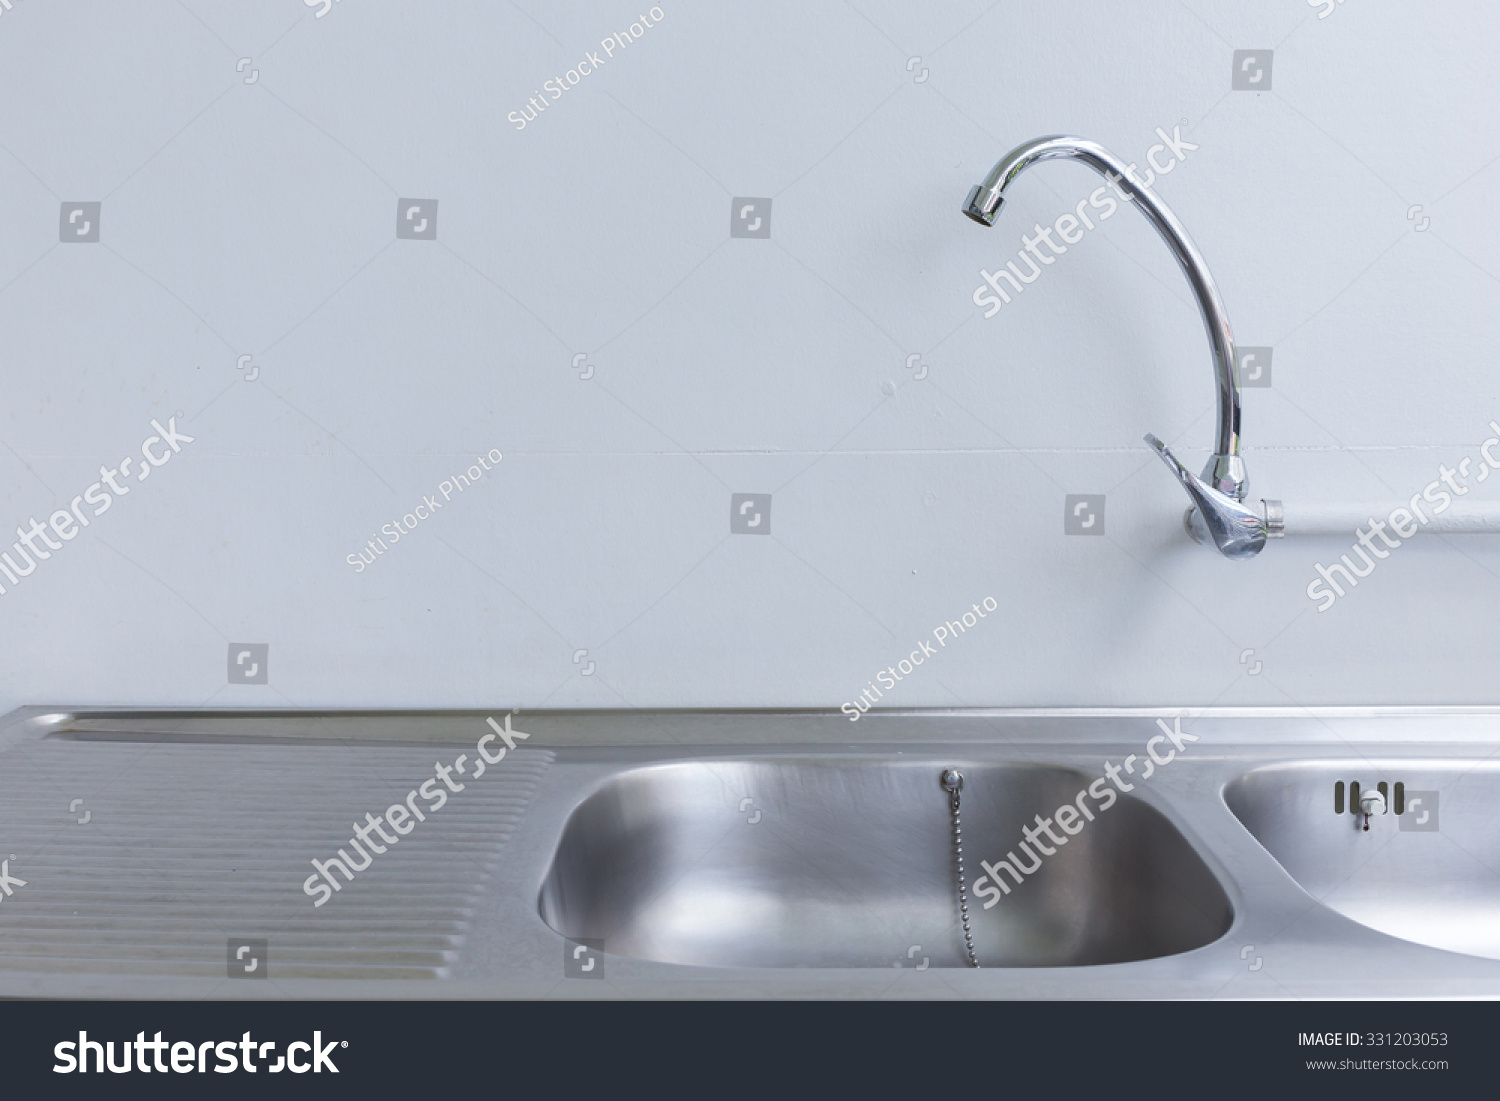 stainless steel sink and faucet in white kitchen room | EZ Canvas